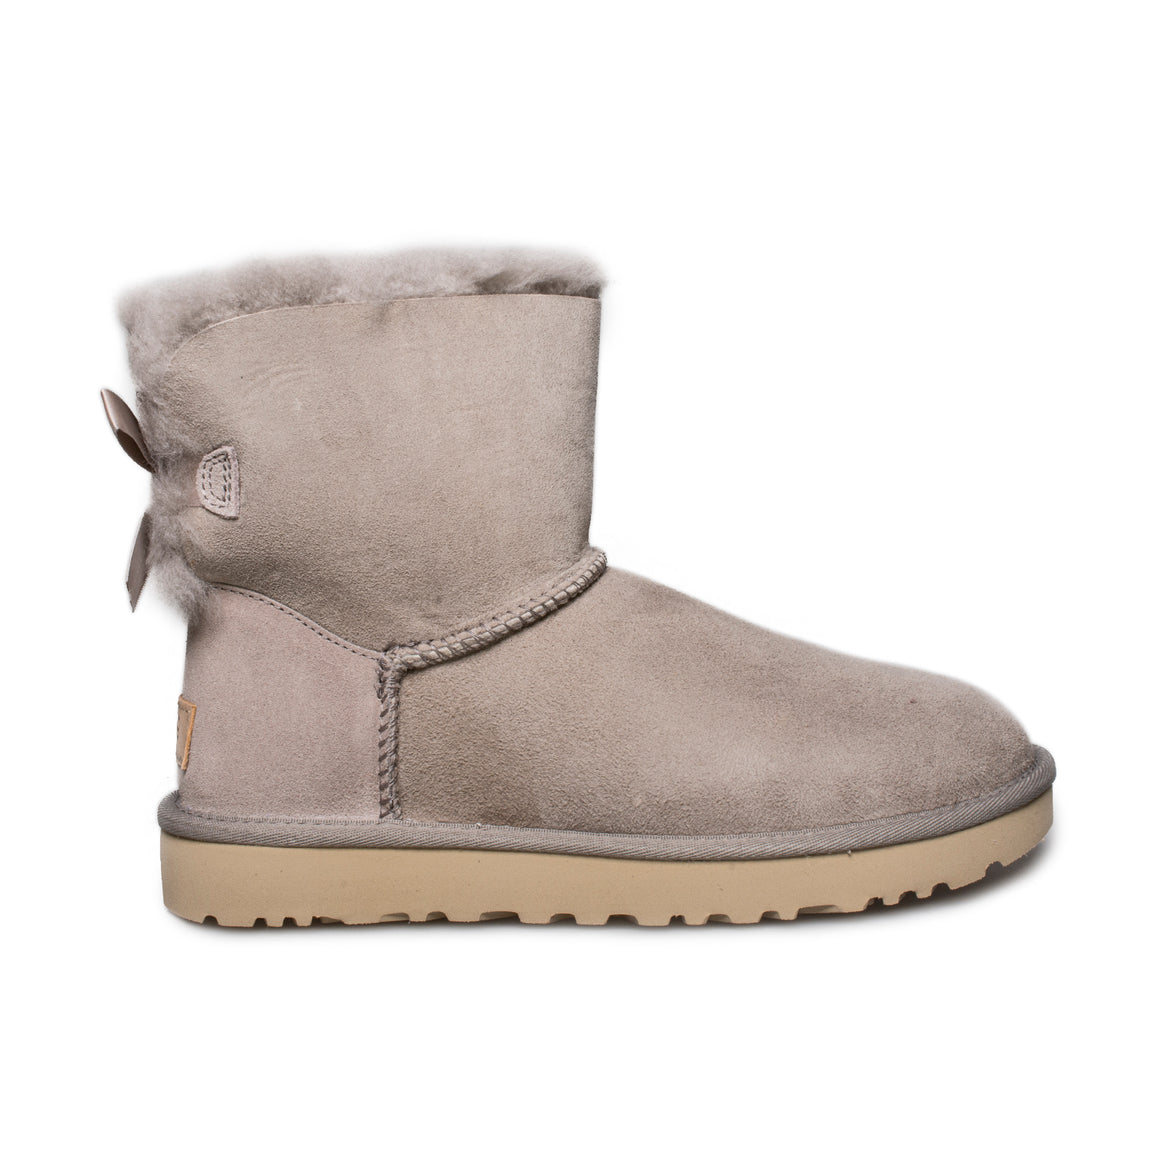 UGG Mini Bailey Brooch Oyster Boots - Women's